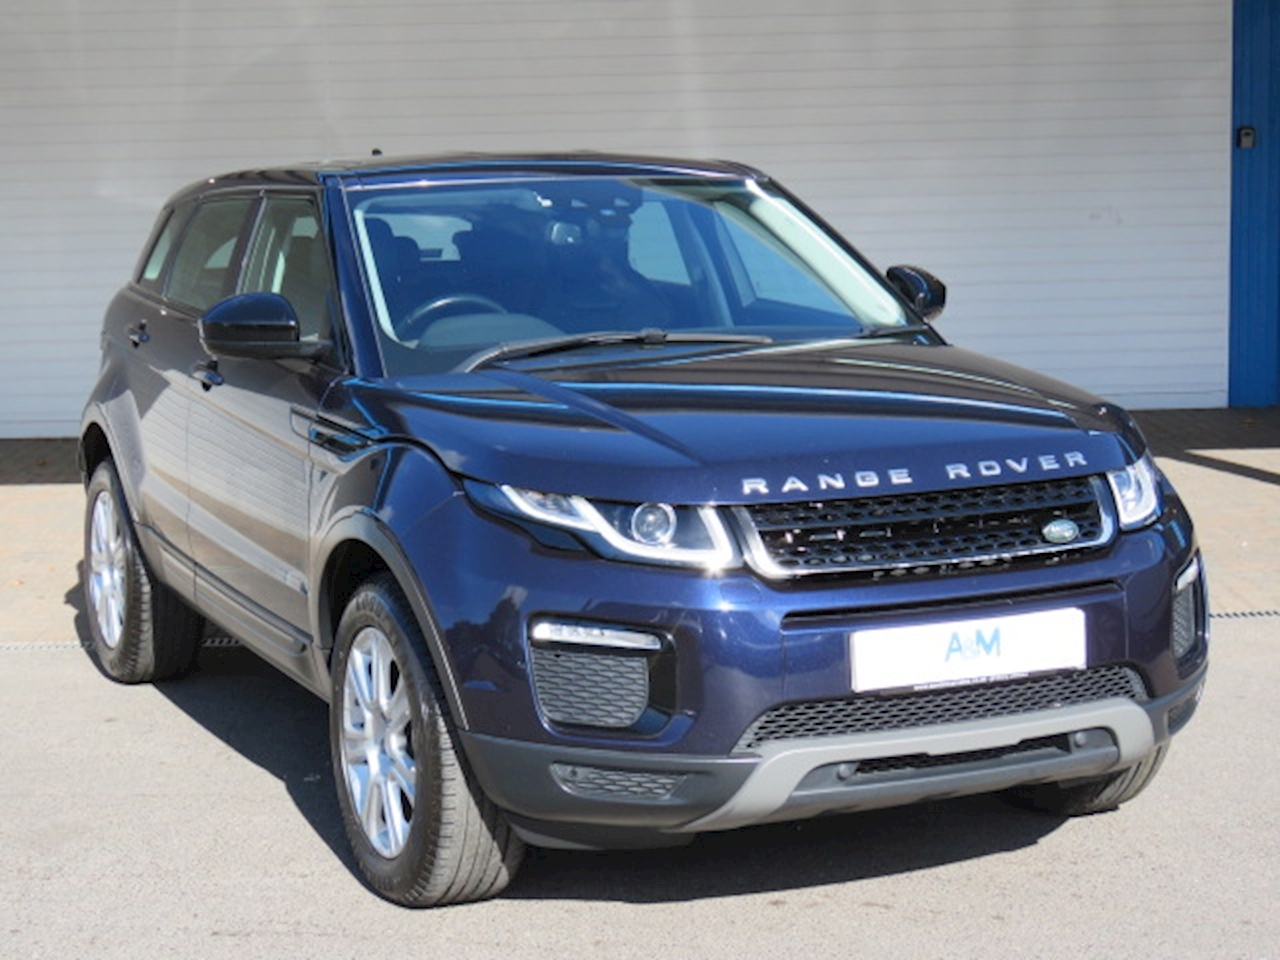 Land Rover Range Rover Evoque SE Tech SUV 2.0 Manual Diesel